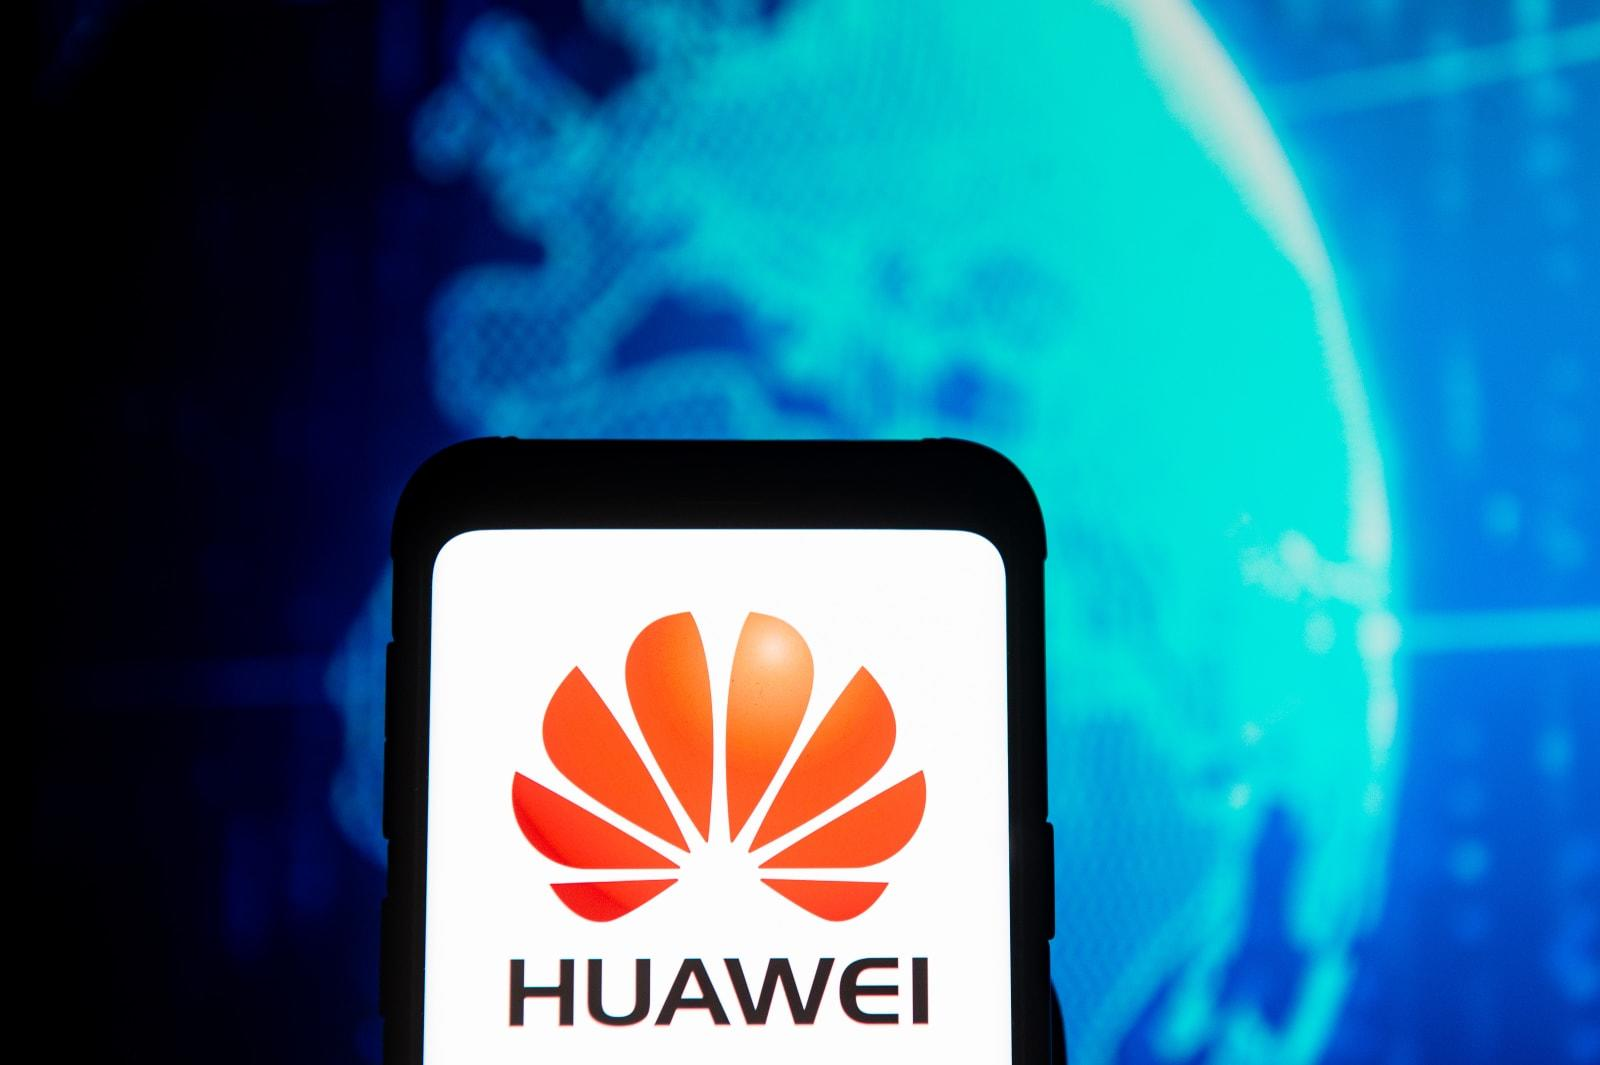 China, Huawei propose internet protocol with a built-in killswitch | Engadget